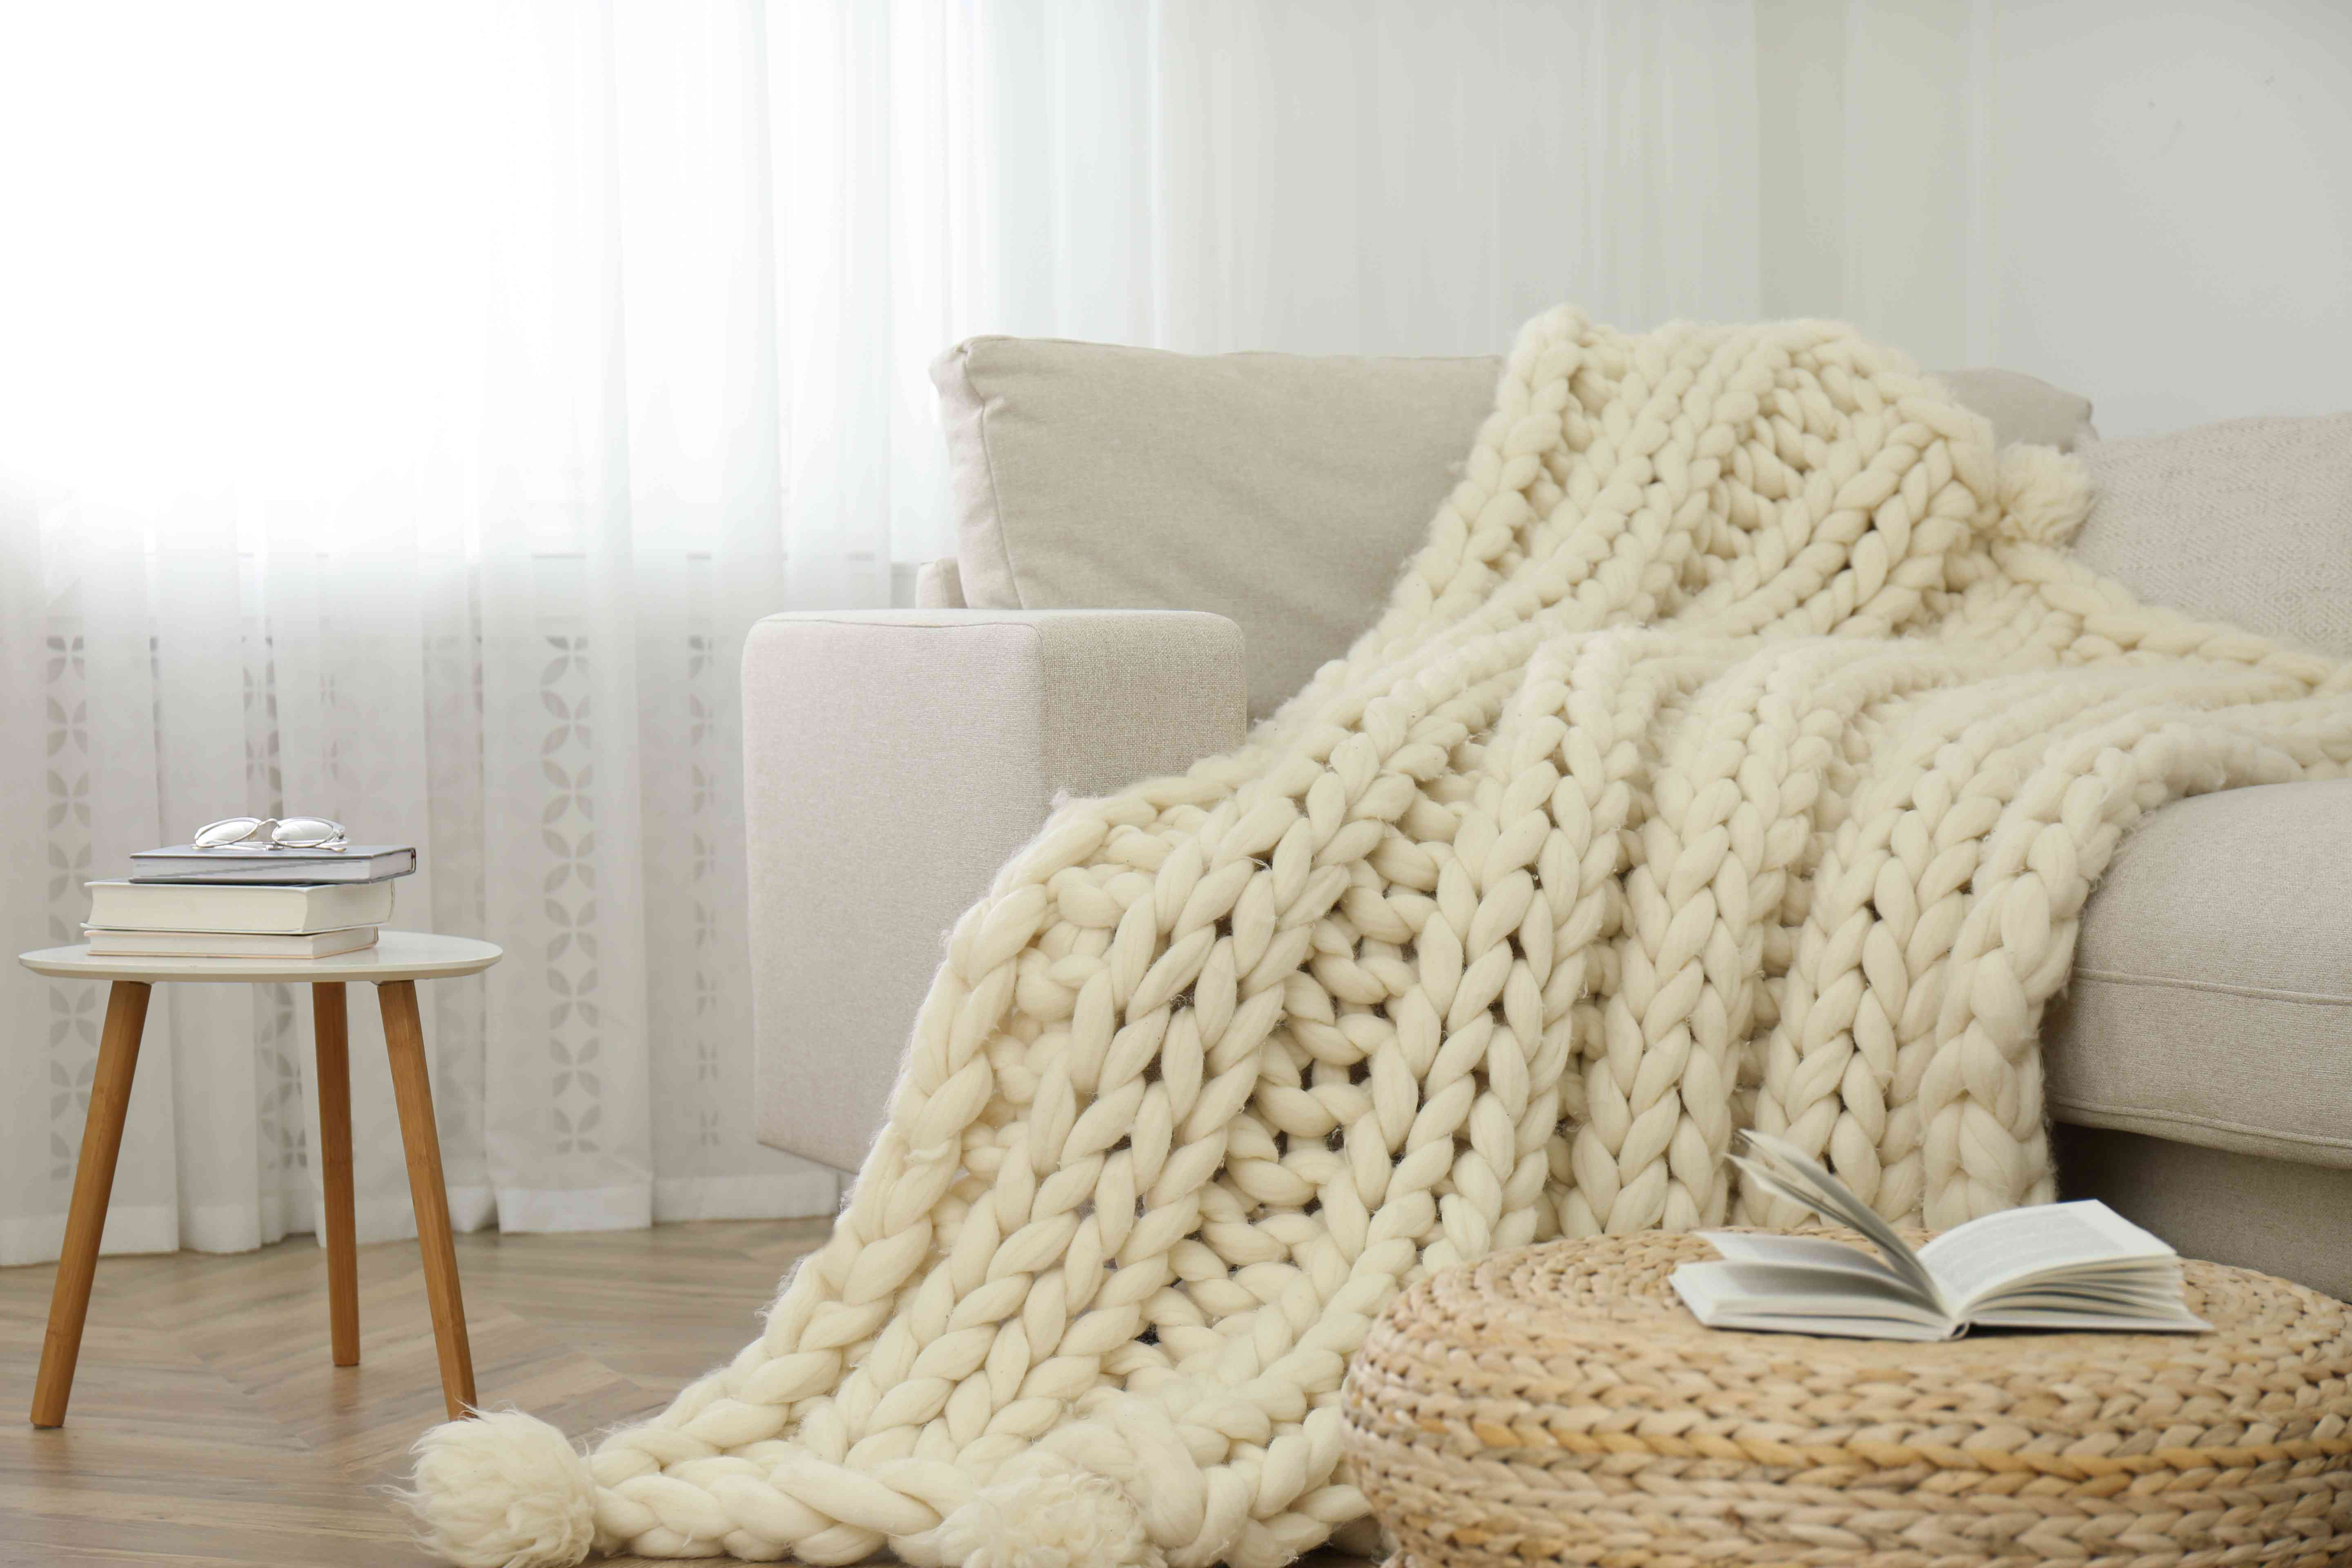 A chunky throw blanket on a couch